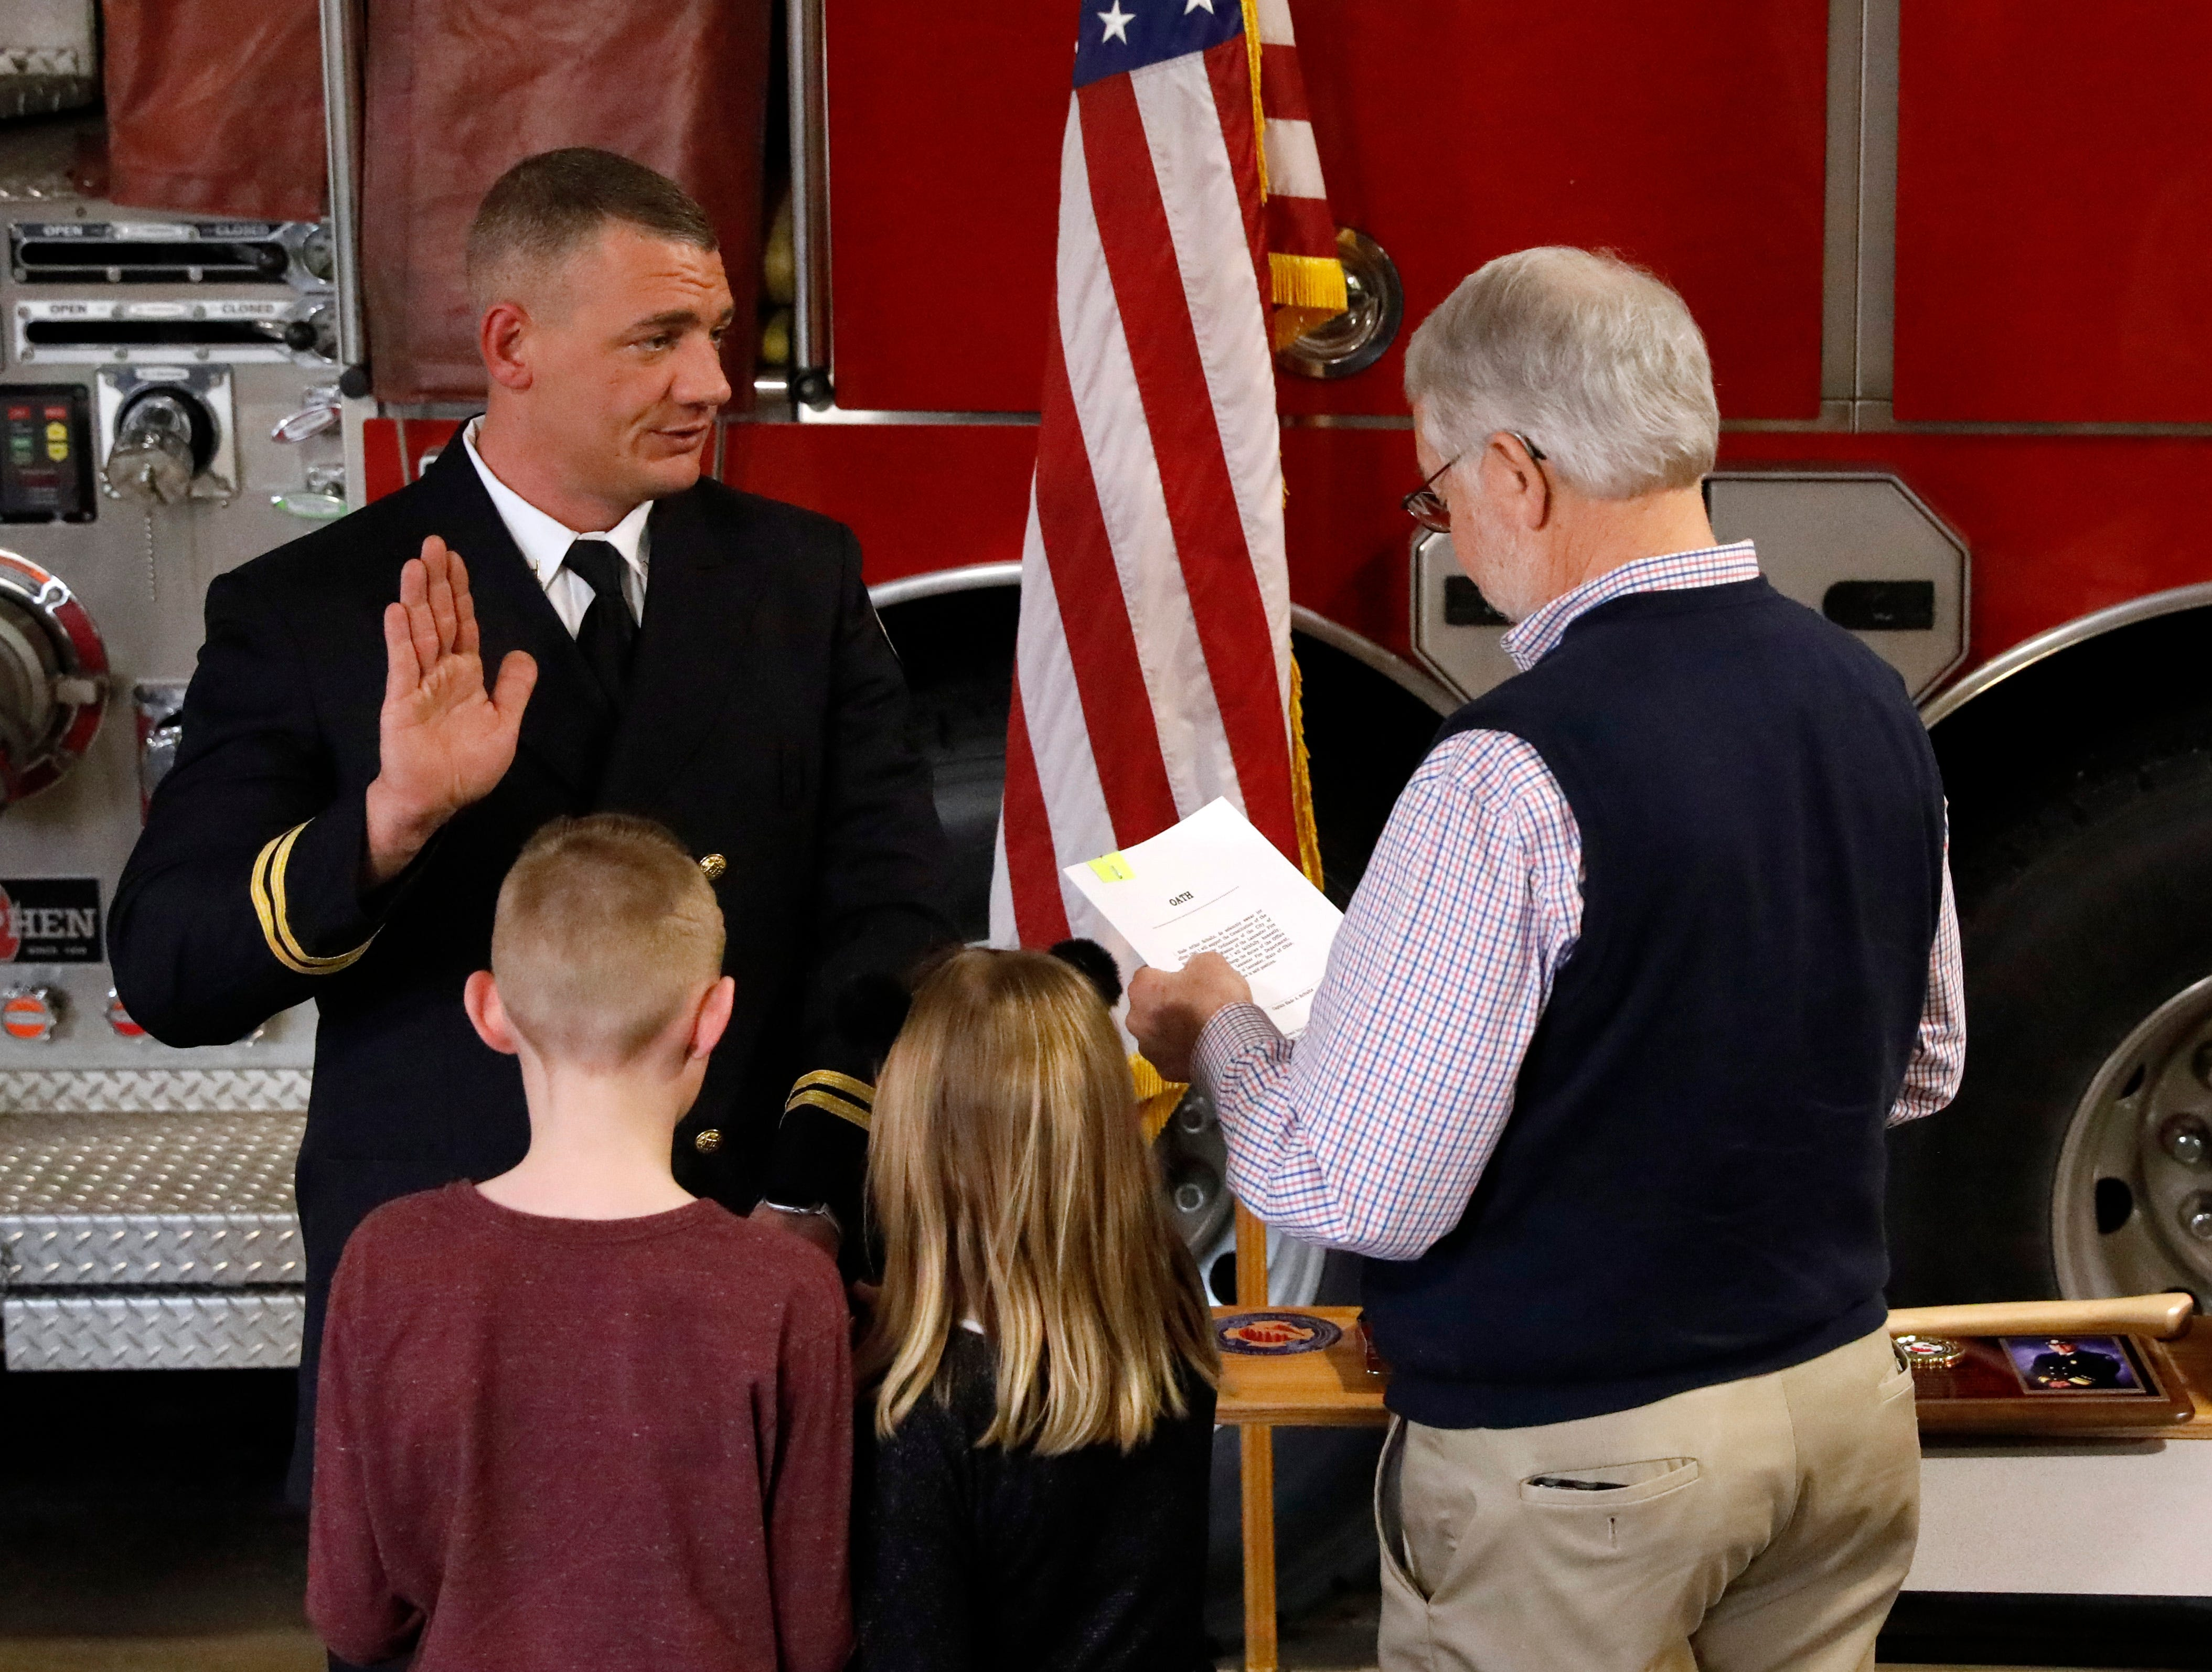 Capt. Slade Schultz is sworn into his new position with the Lancaster Fire Department by Mayor David Scheffler Friday afternoon, Feb. 15, 2019, at Engine House One in Lancaster.